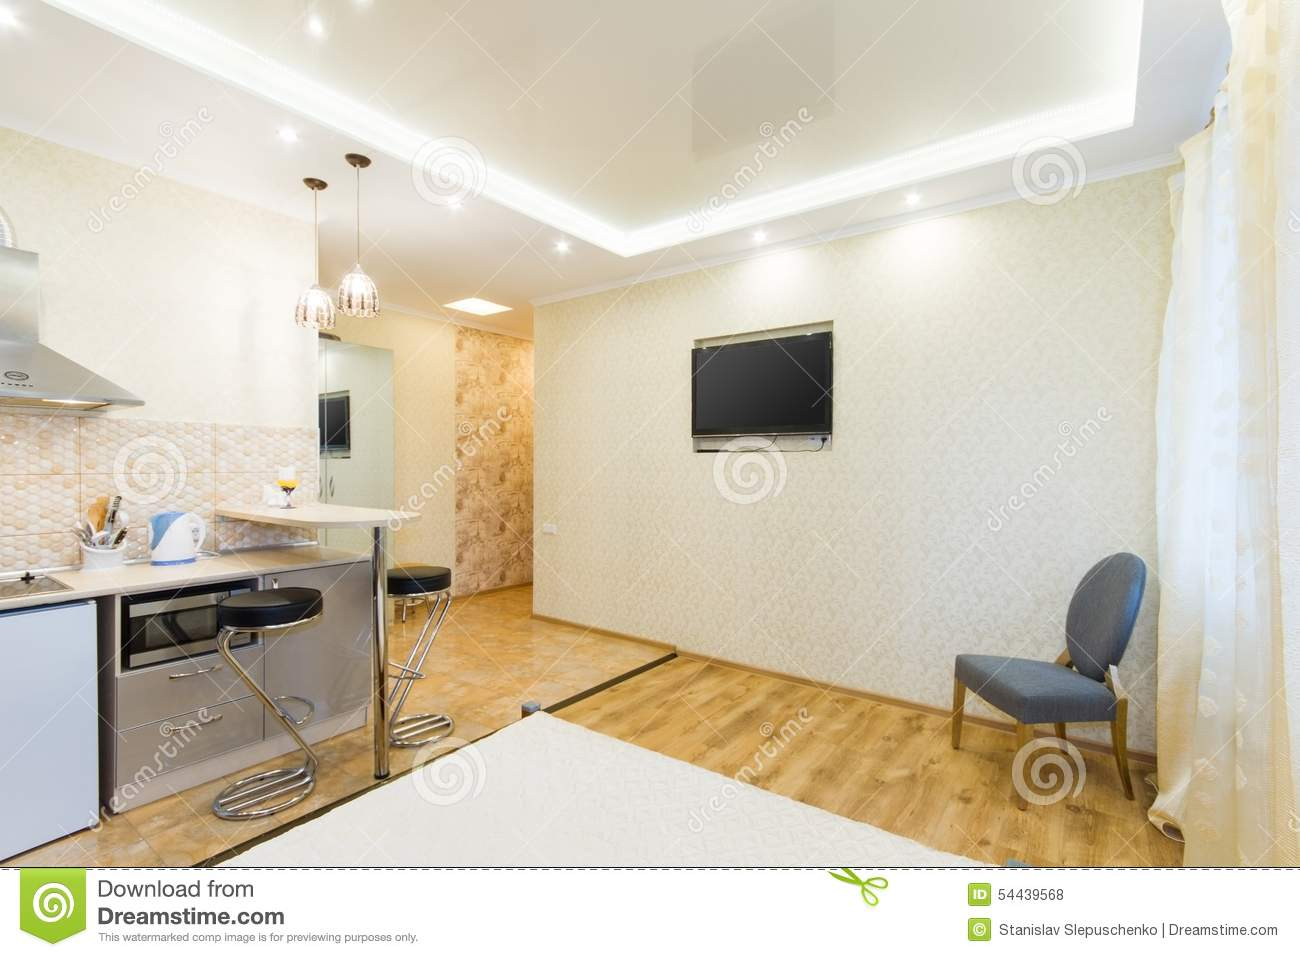 Studio moderne d 39 appartement cuisine et salon photo stock for Salon et cuisine moderne